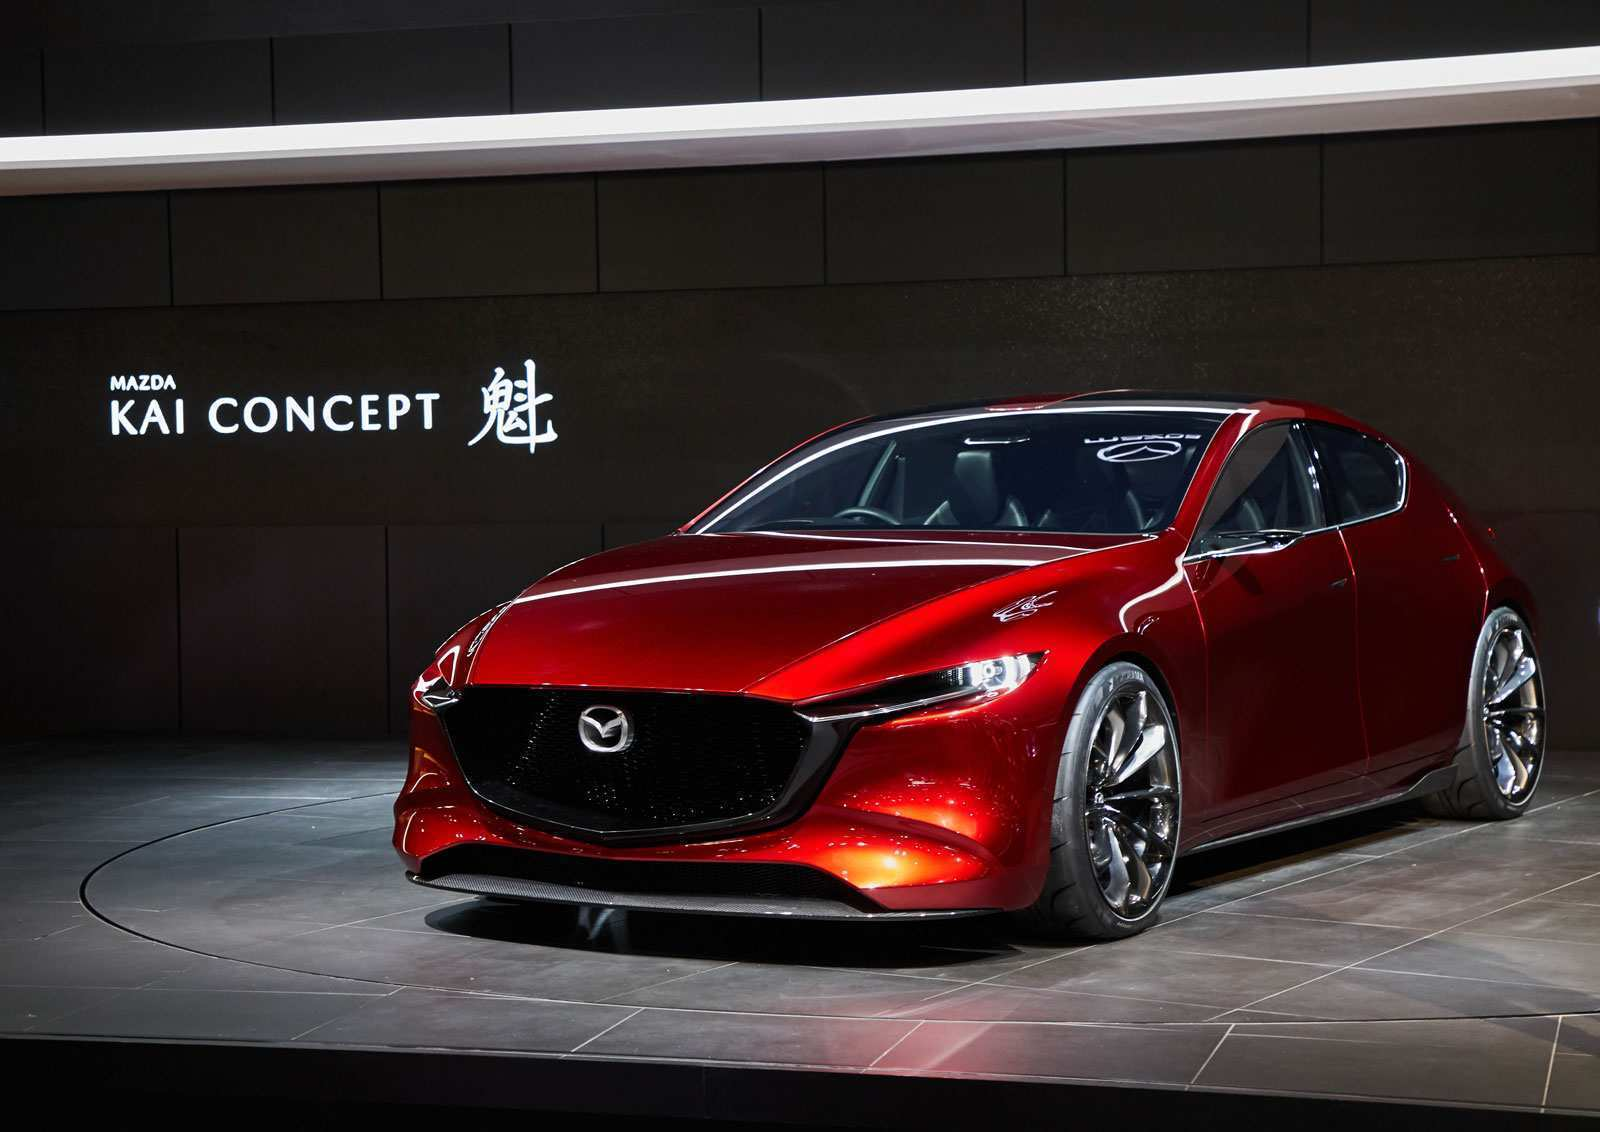 48 Great Nuevos New Conceptos Mazda 2020 First Drive with Nuevos New Conceptos Mazda 2020